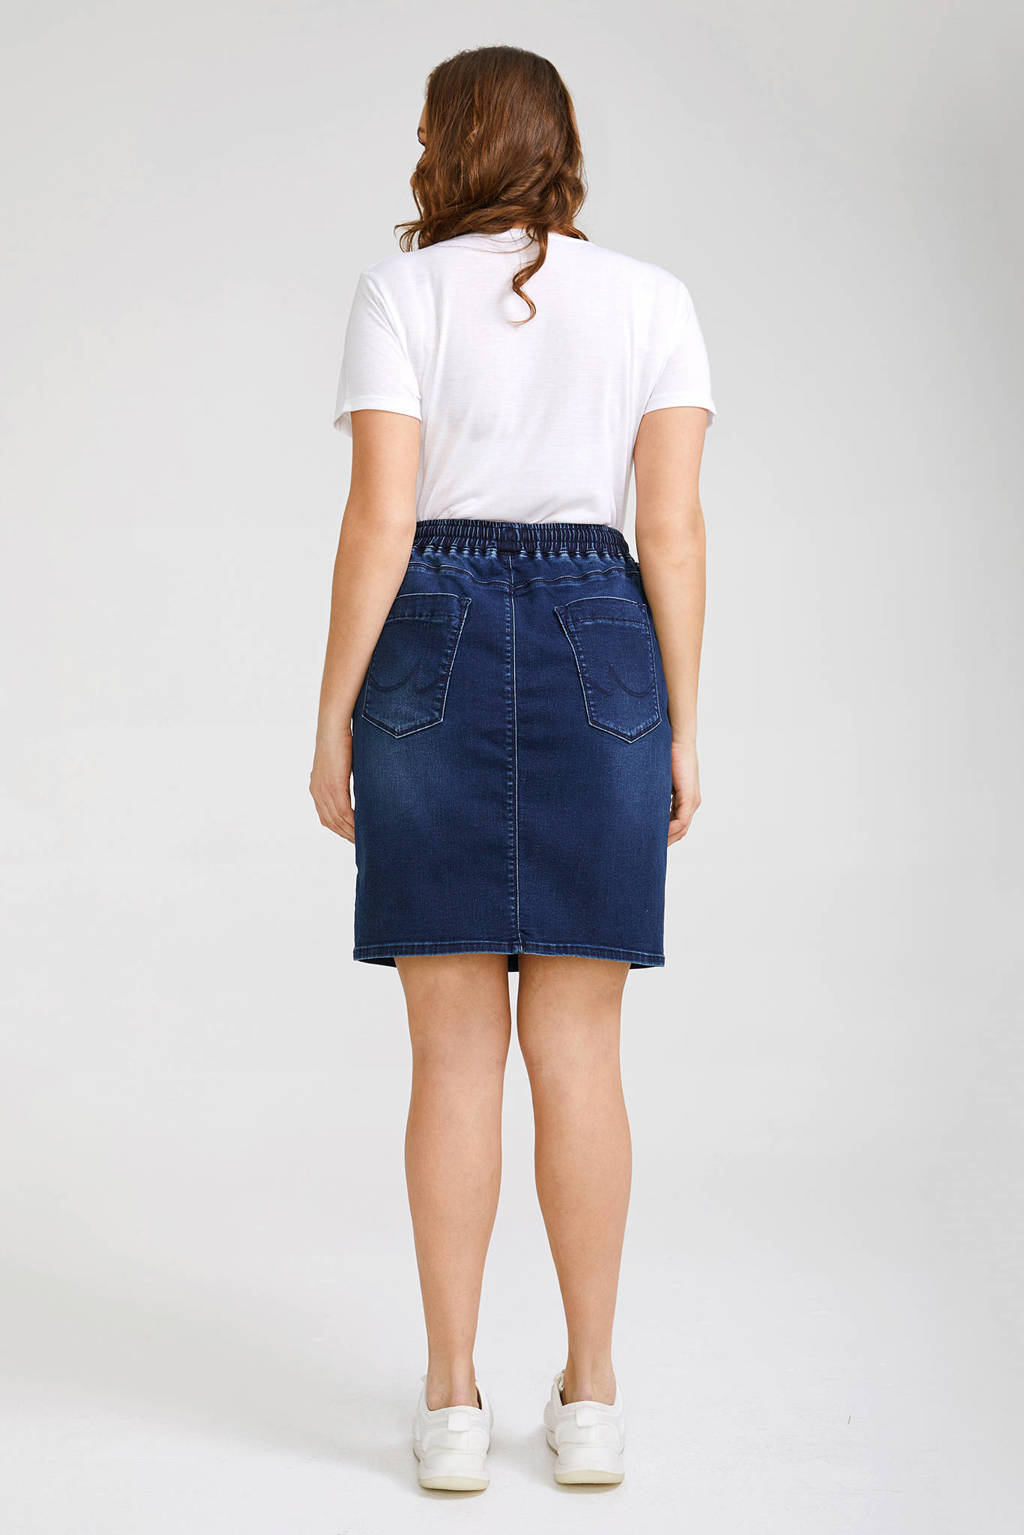 LTB Jeans Love to be rok Gella omares wash, Omares wash